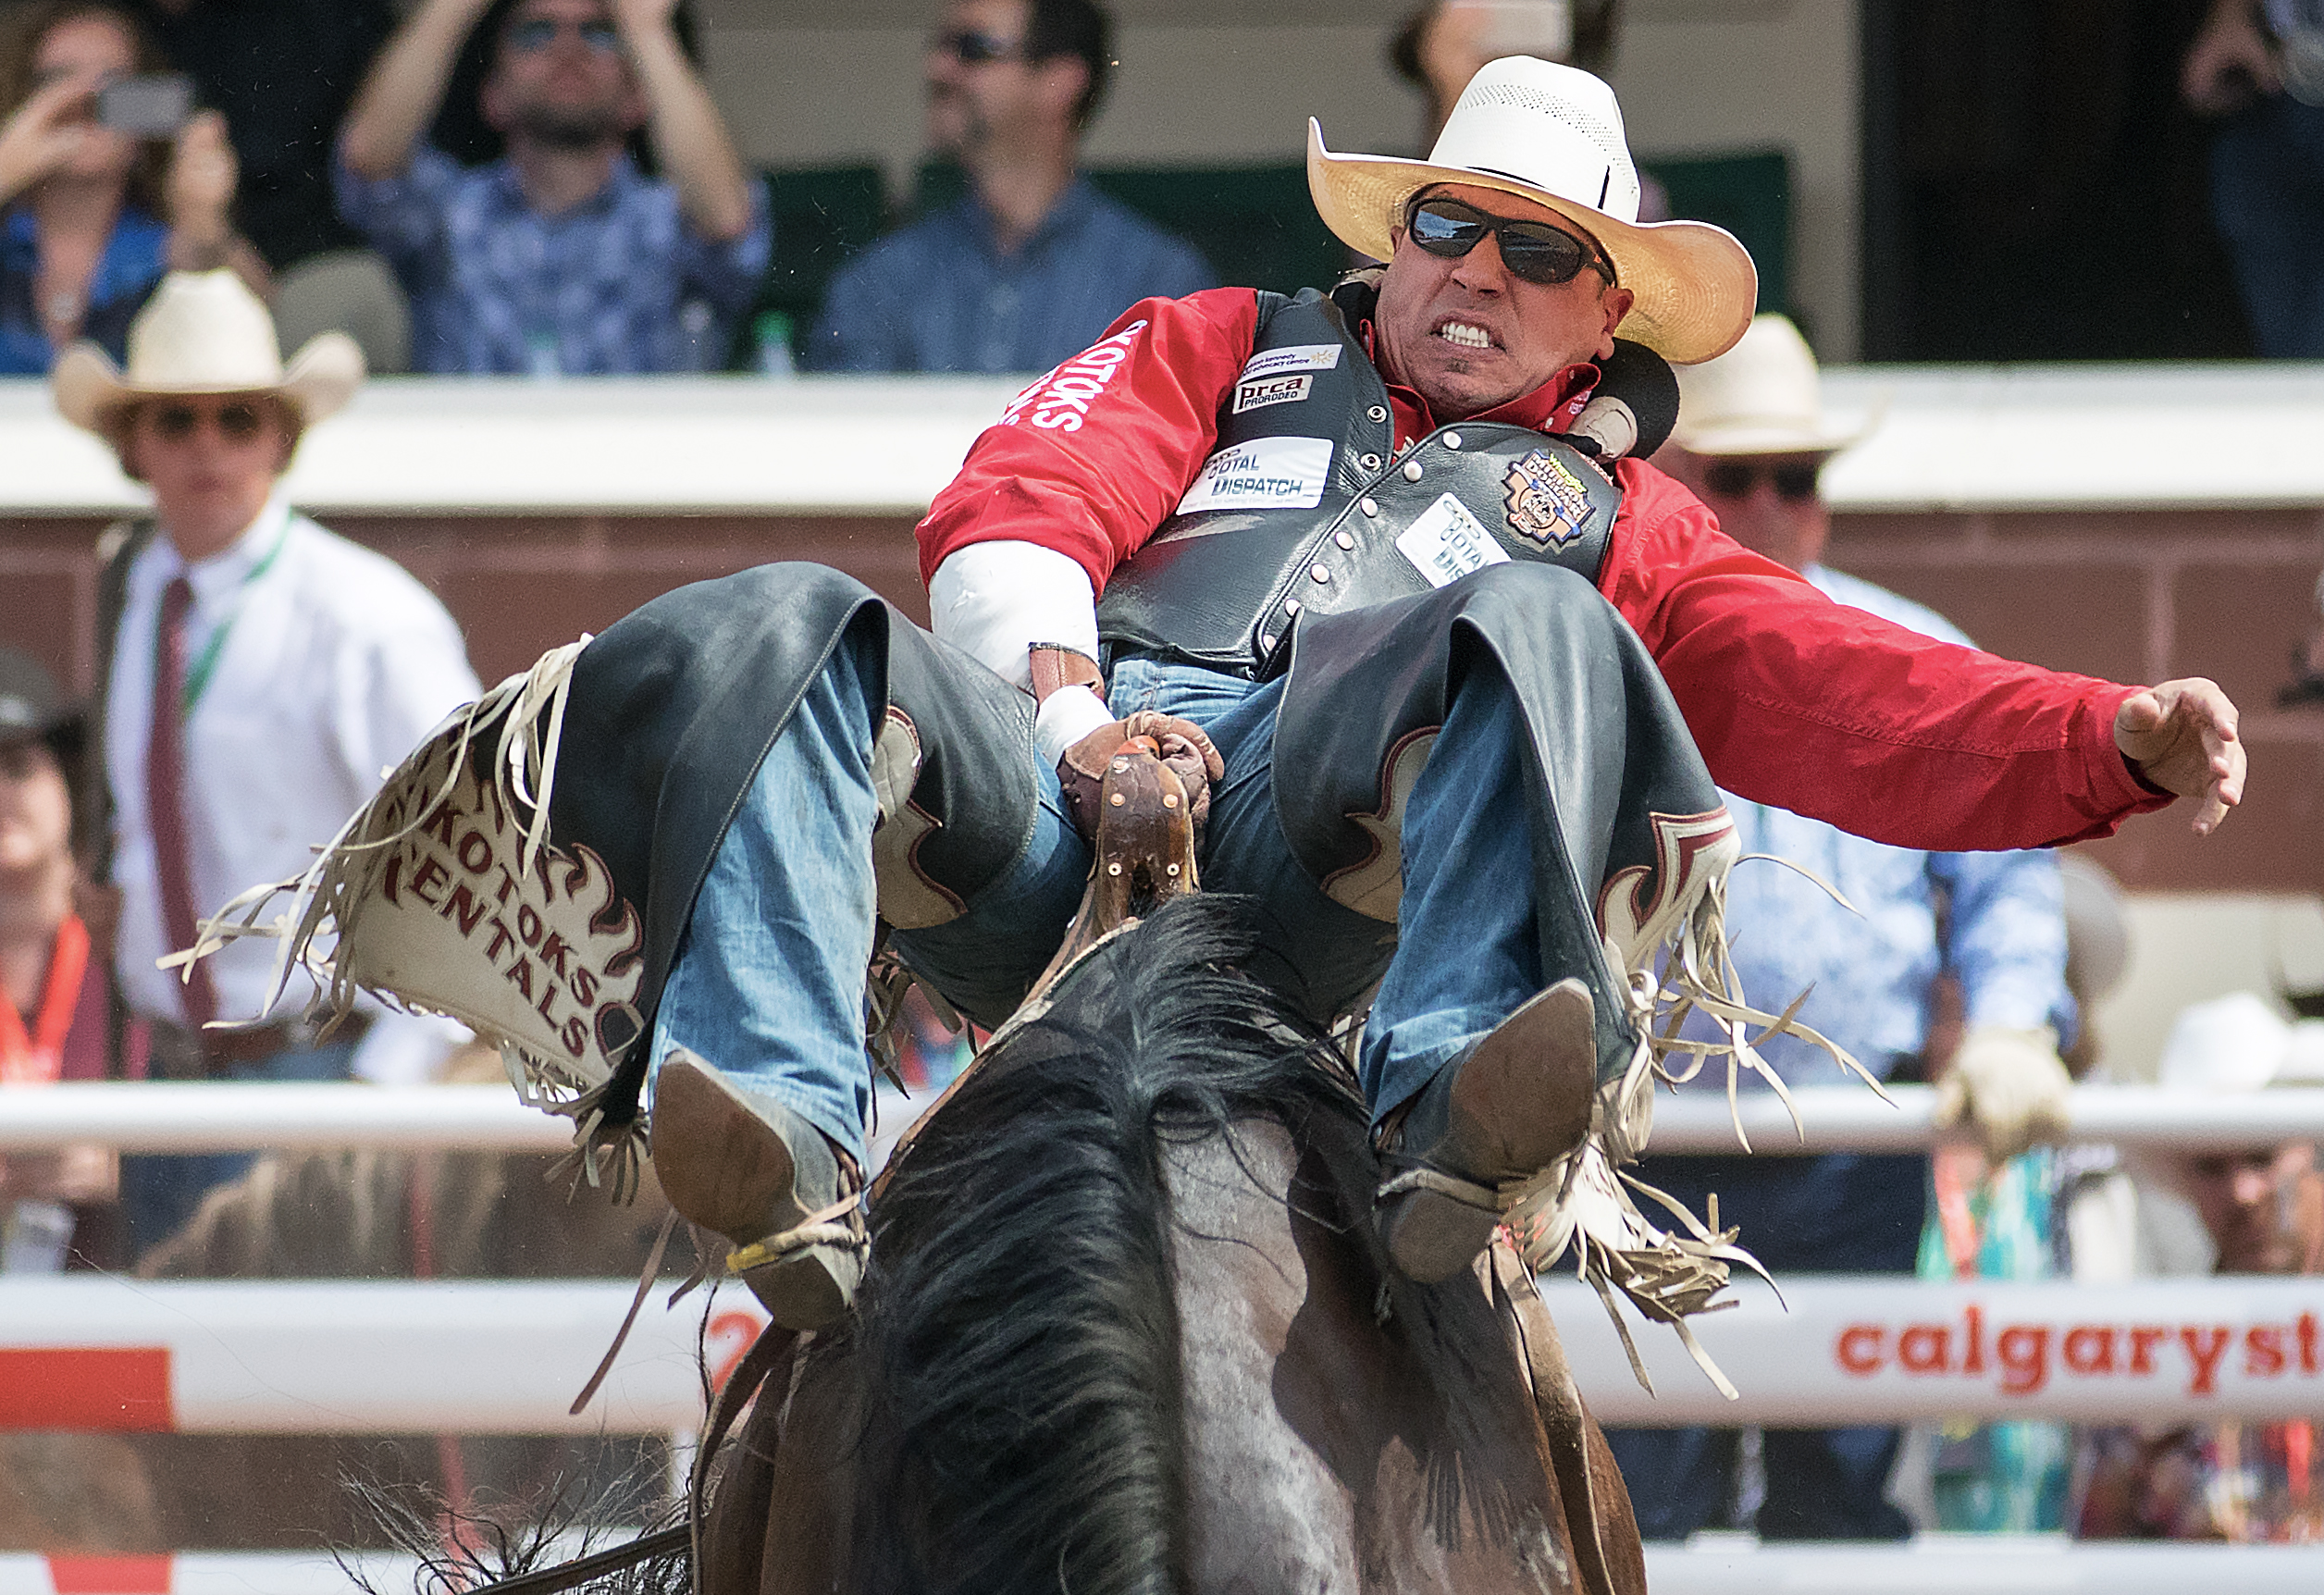 Alberta's gay rodeo is back, and this year it's